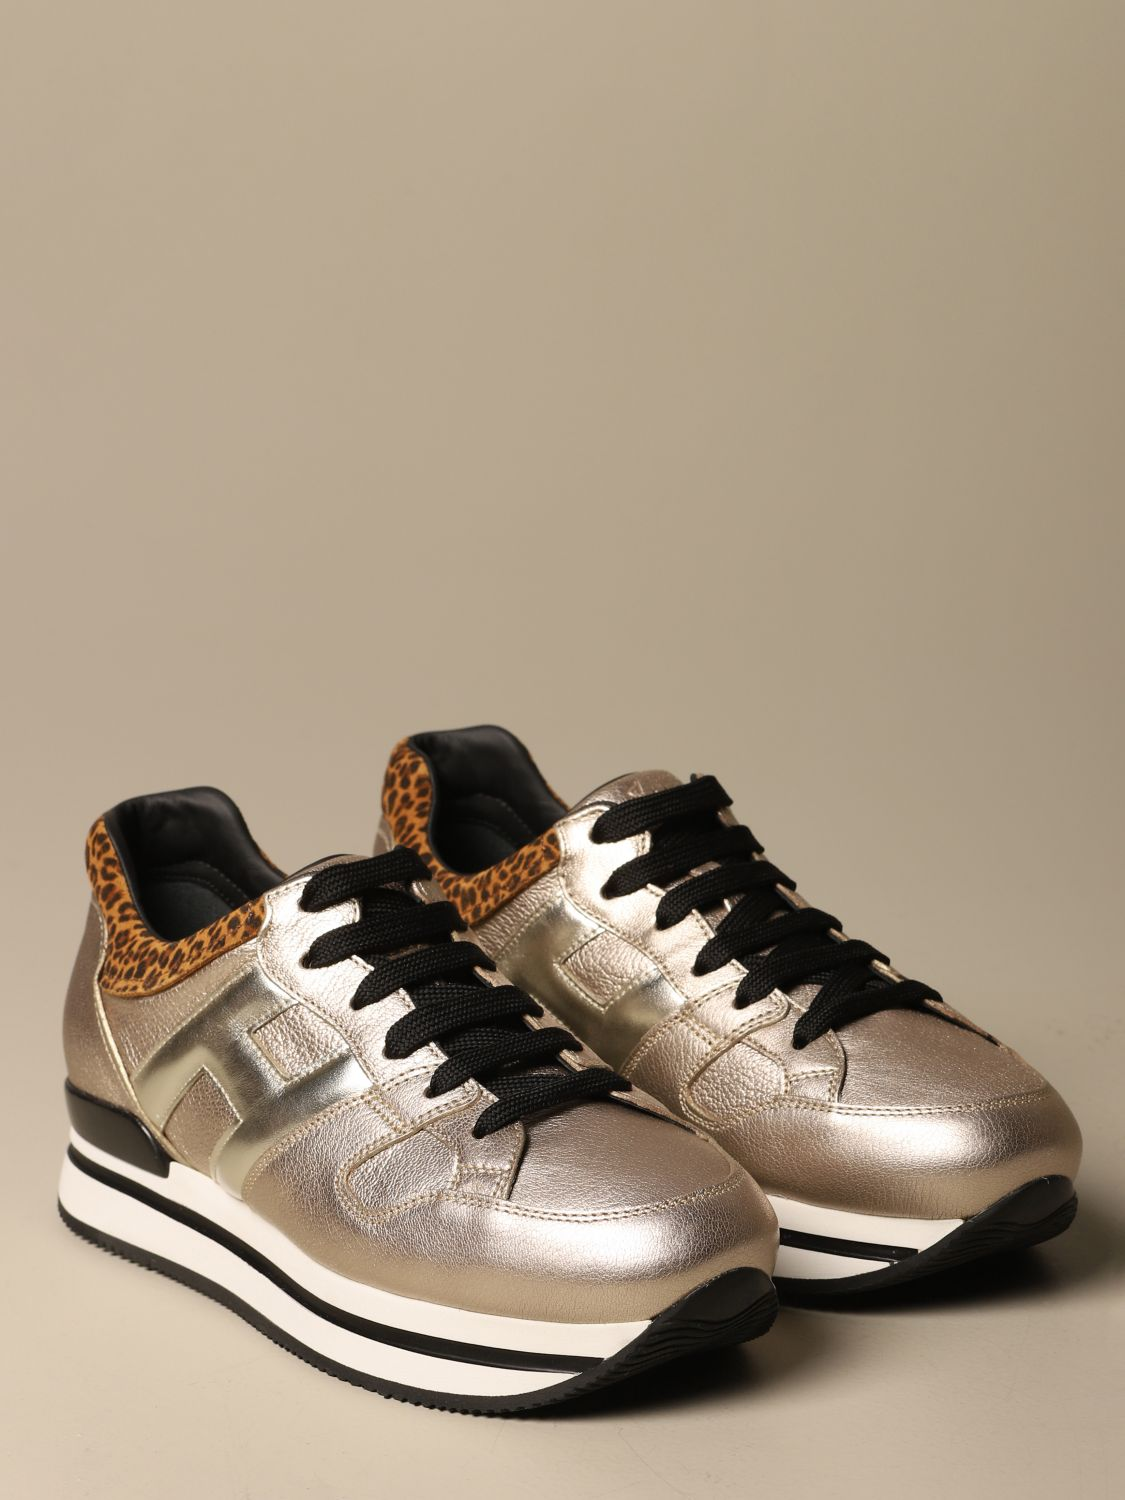 H222 Hogan running laminated leather sneakers